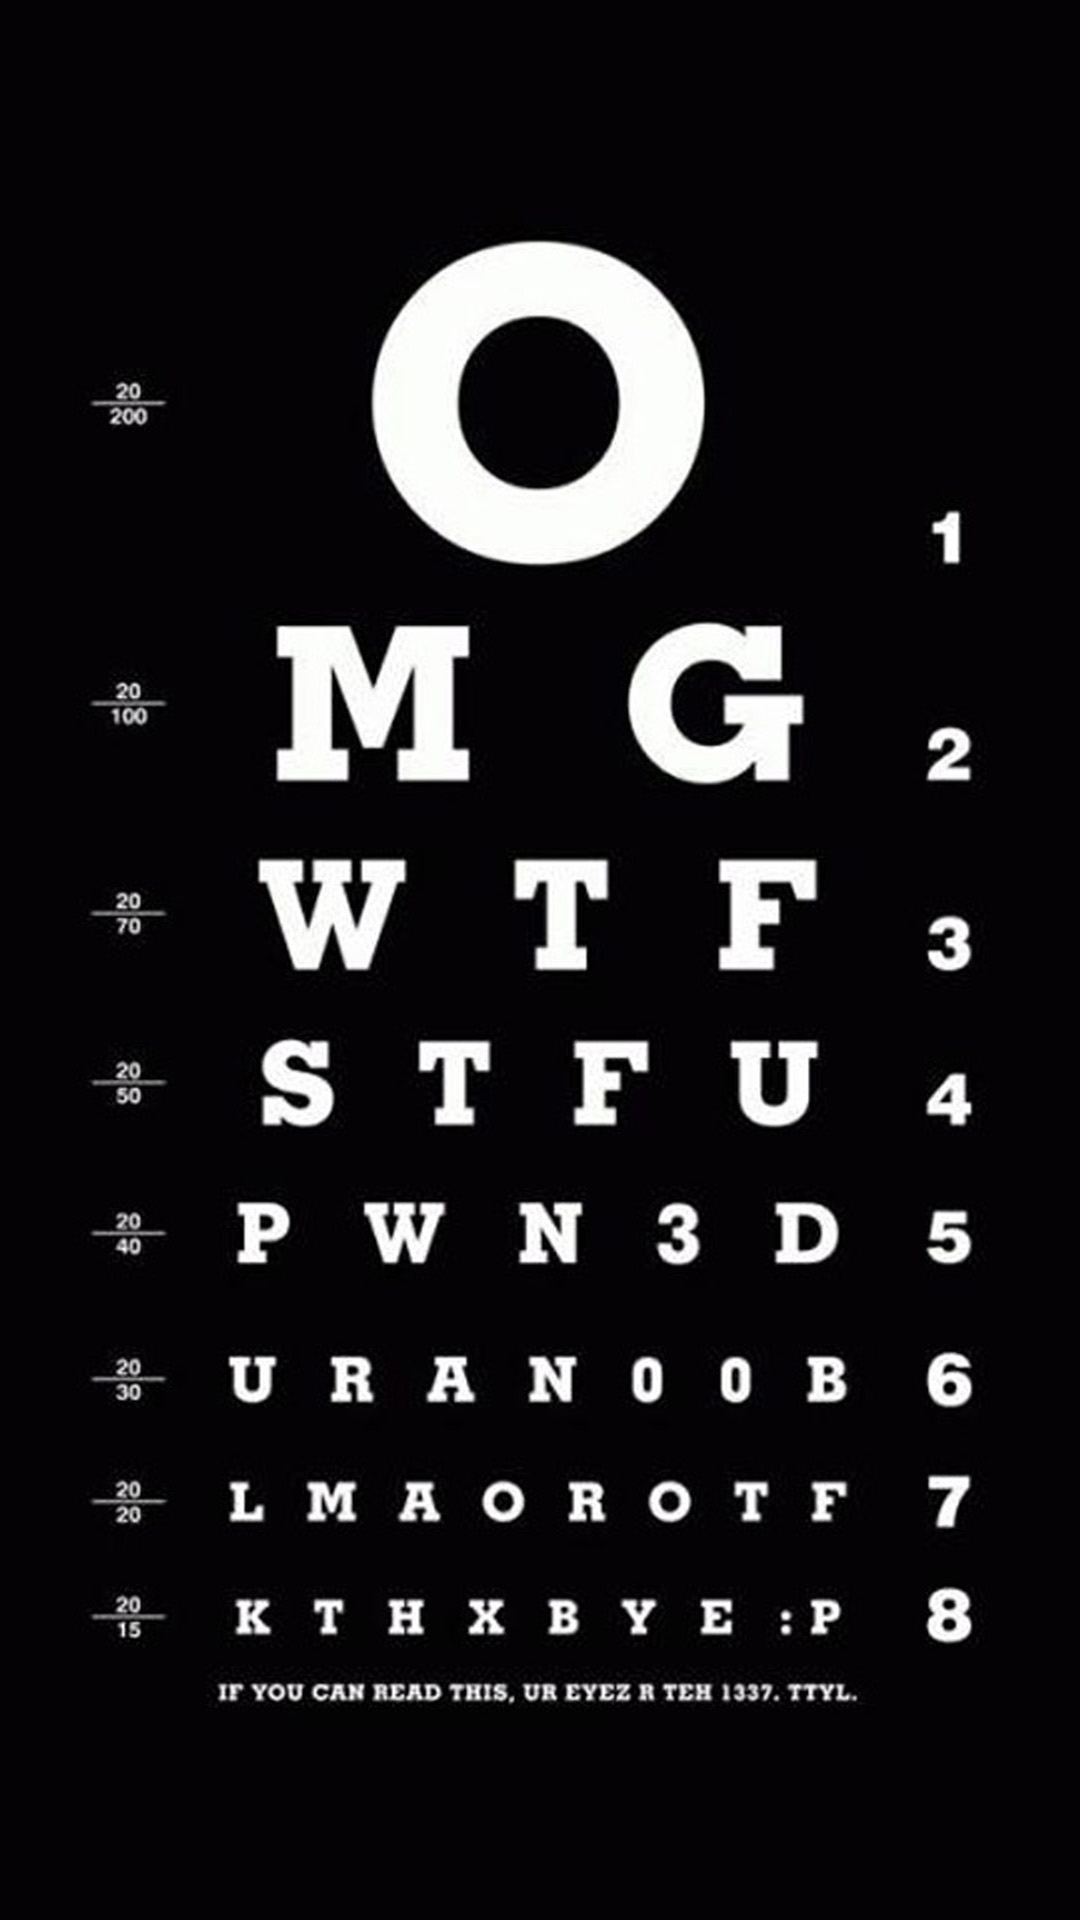 Exams Over Wallpapers Funny Eye Exam hd Wallpaper